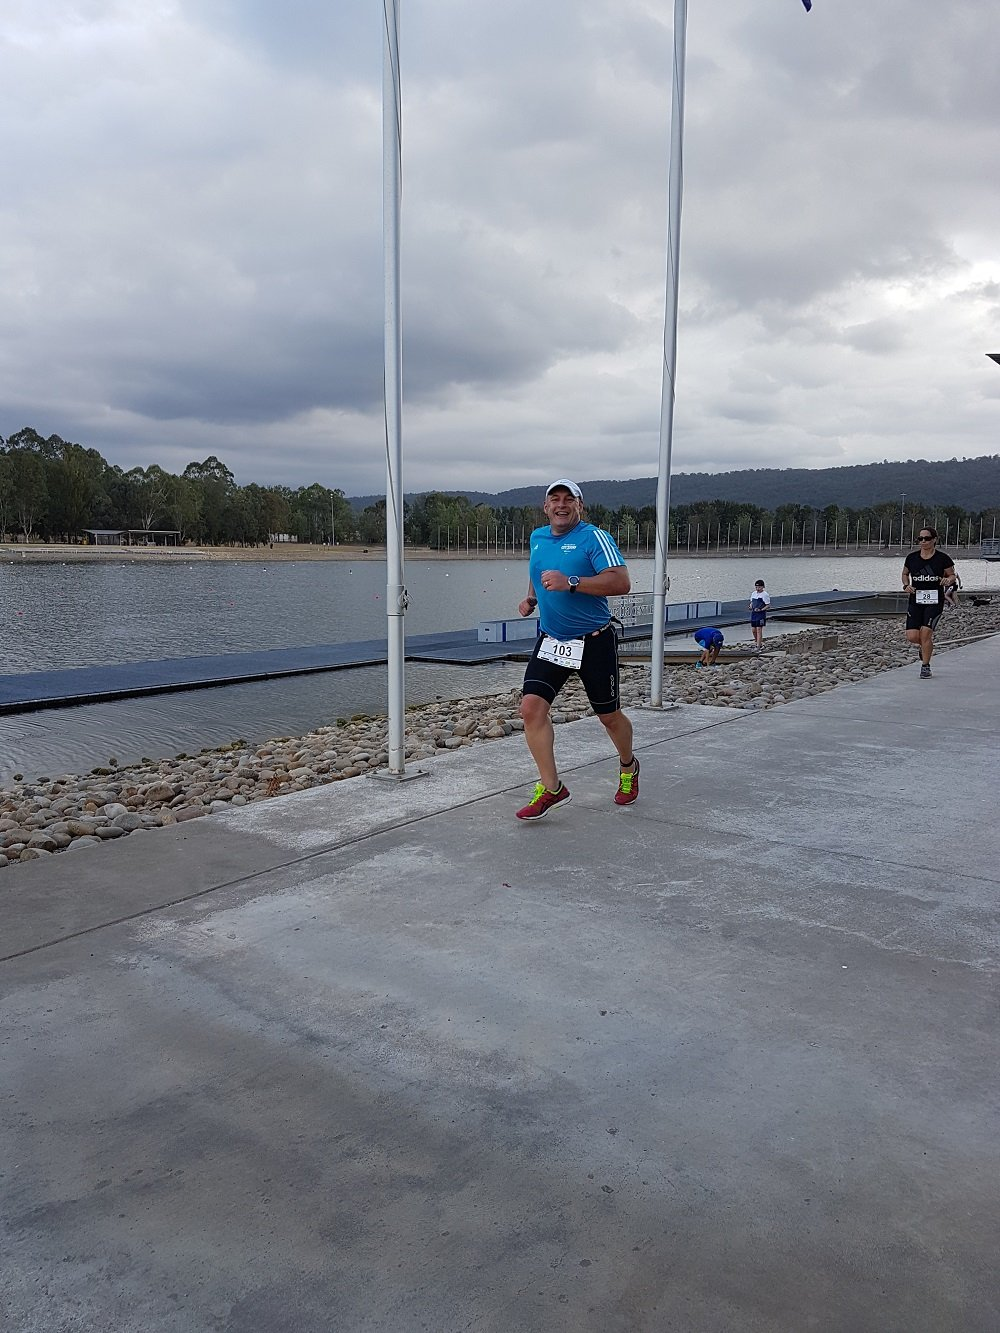 What to do on race day - Your first Triathlon!